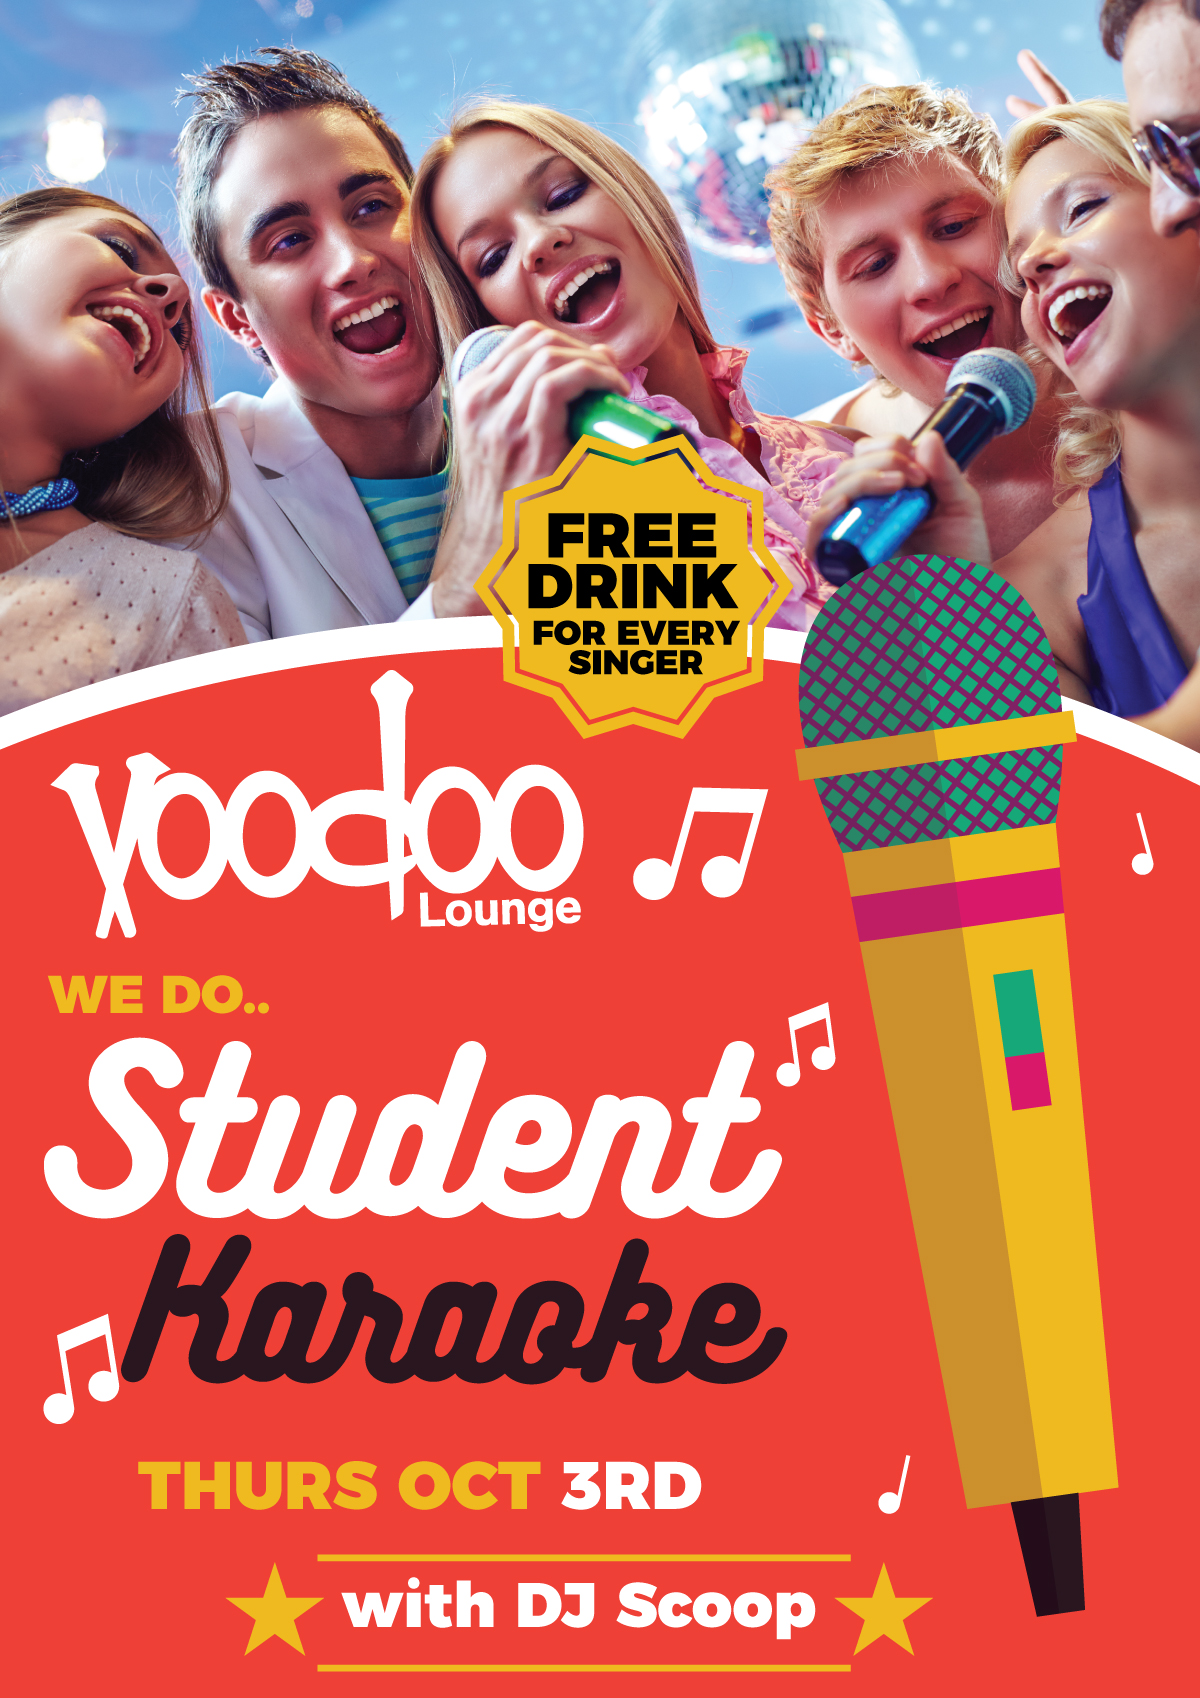 voodoo-venue---thurs---We-Do-Student-Karaoke-thurs-OCT-3-2019.jpg